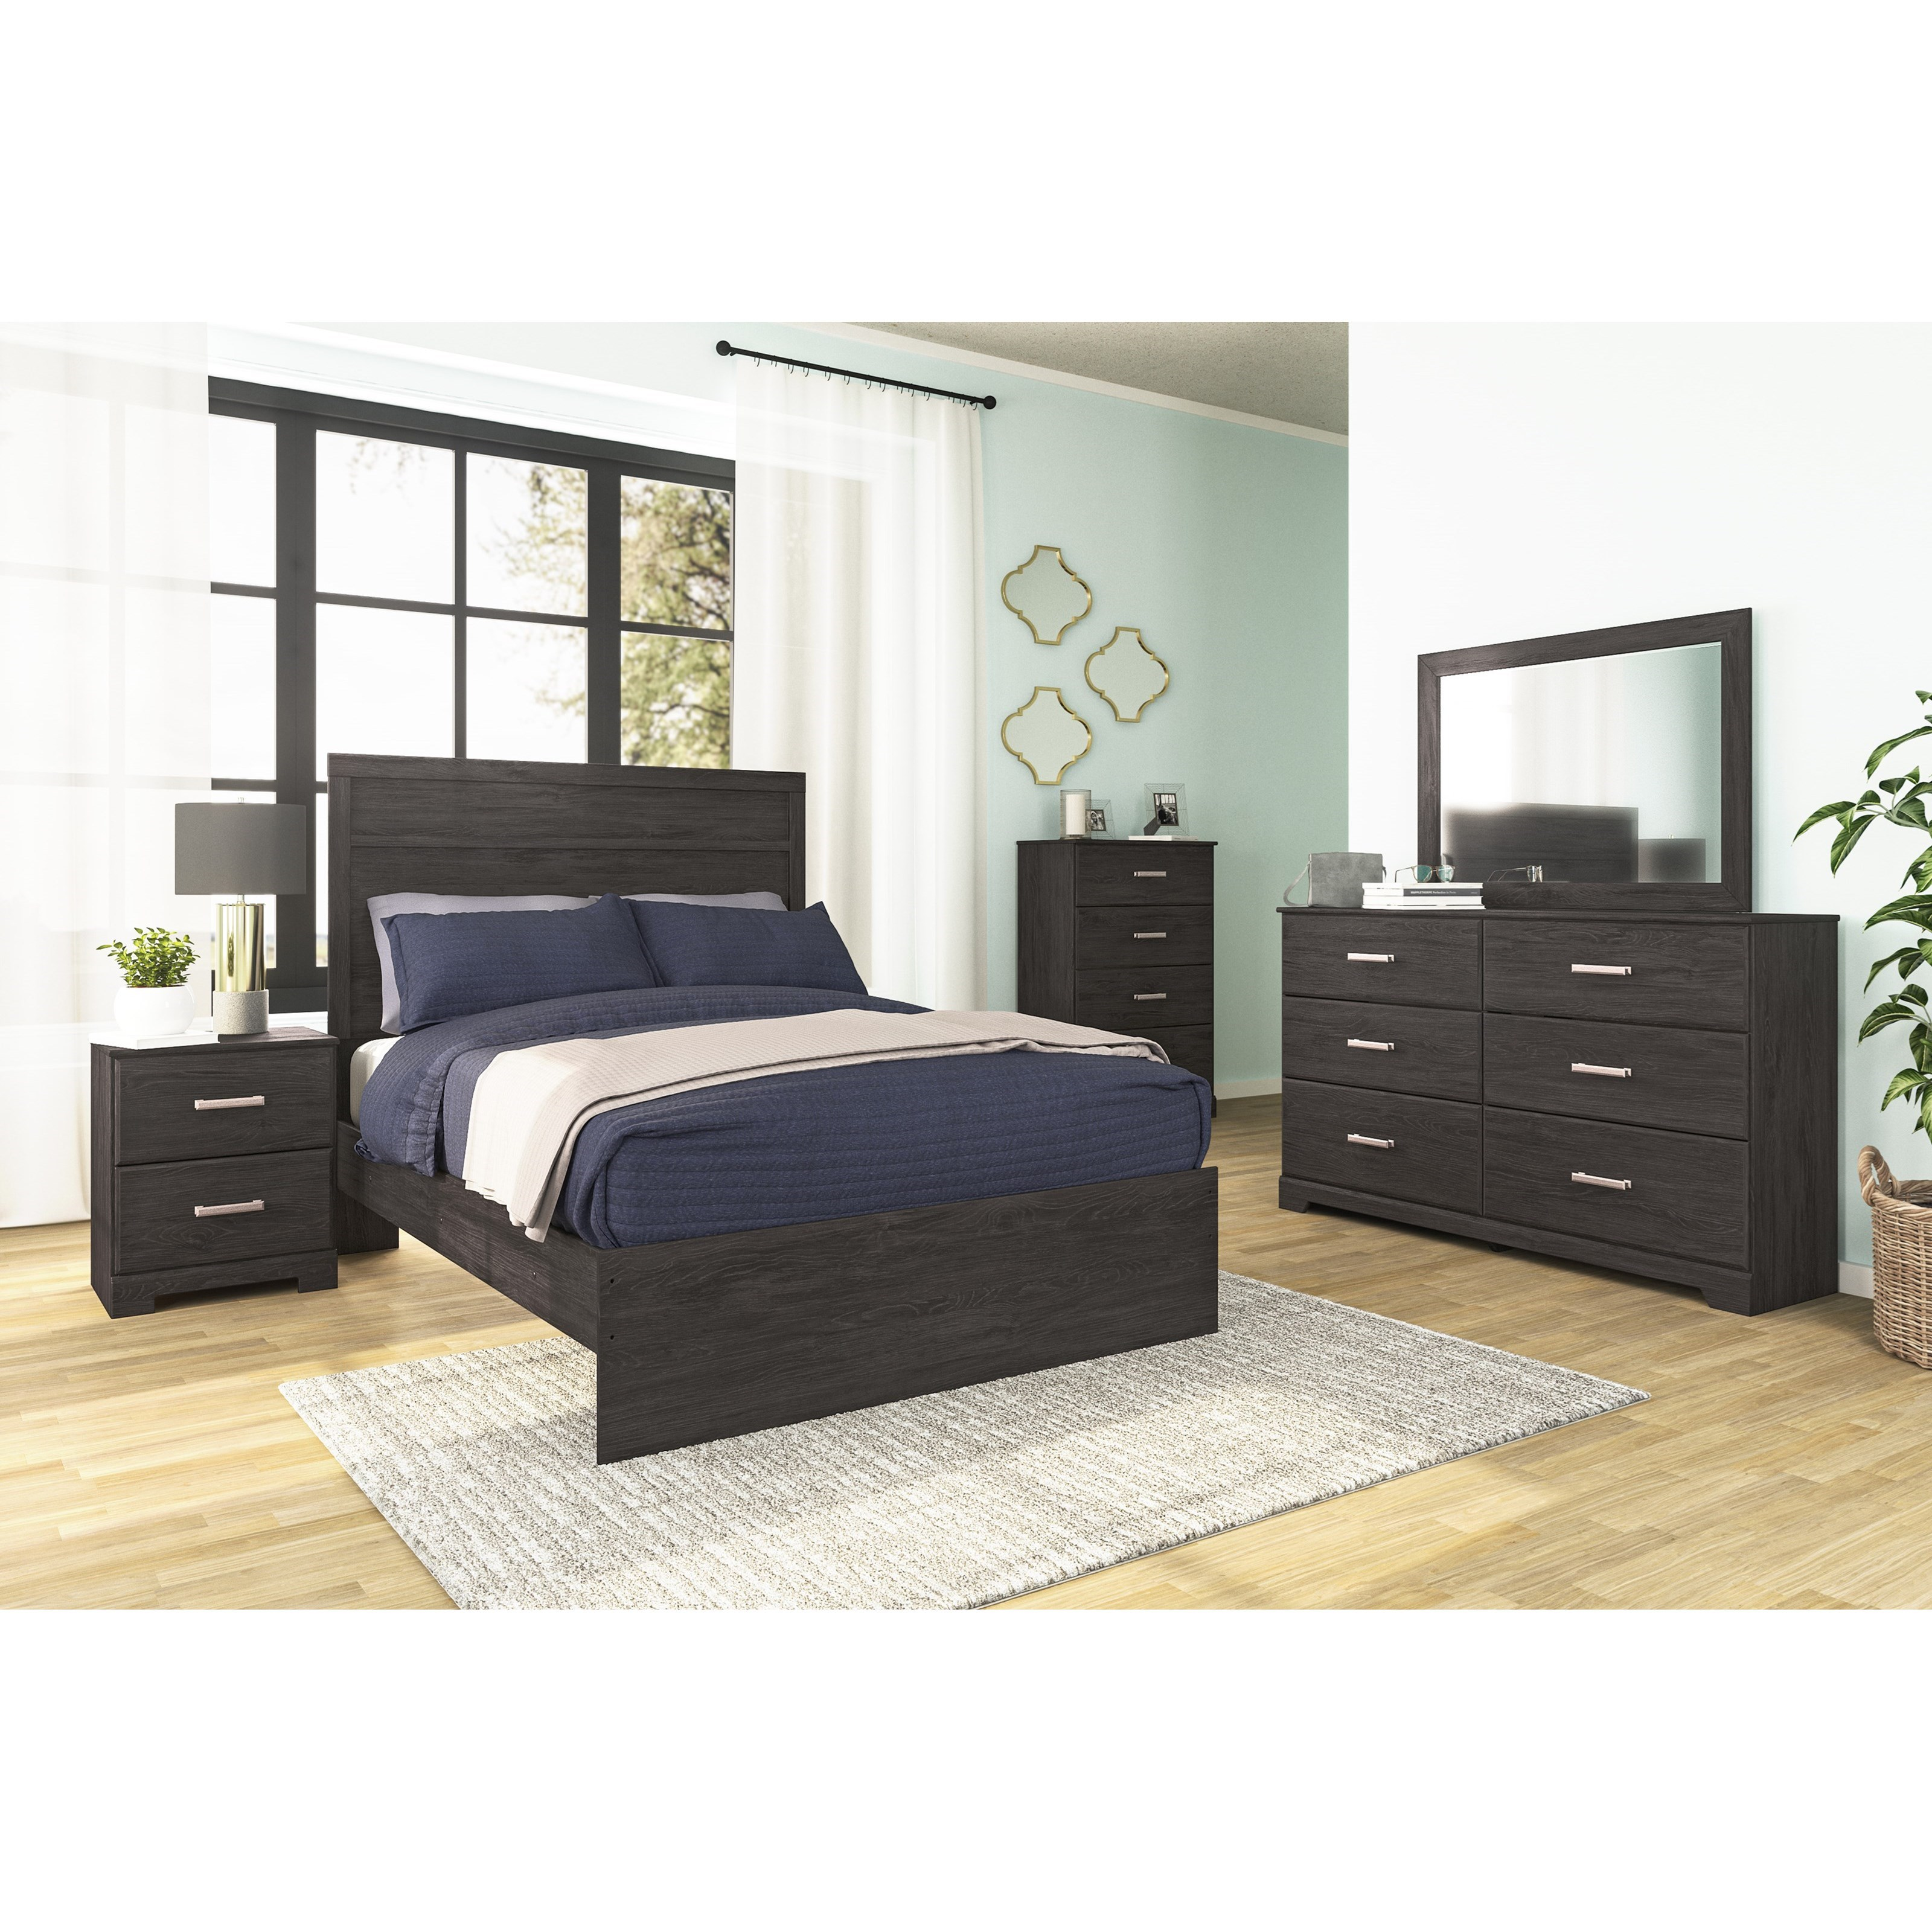 Belachime Full Bedroom Group by Signature Design by Ashley at Household Furniture